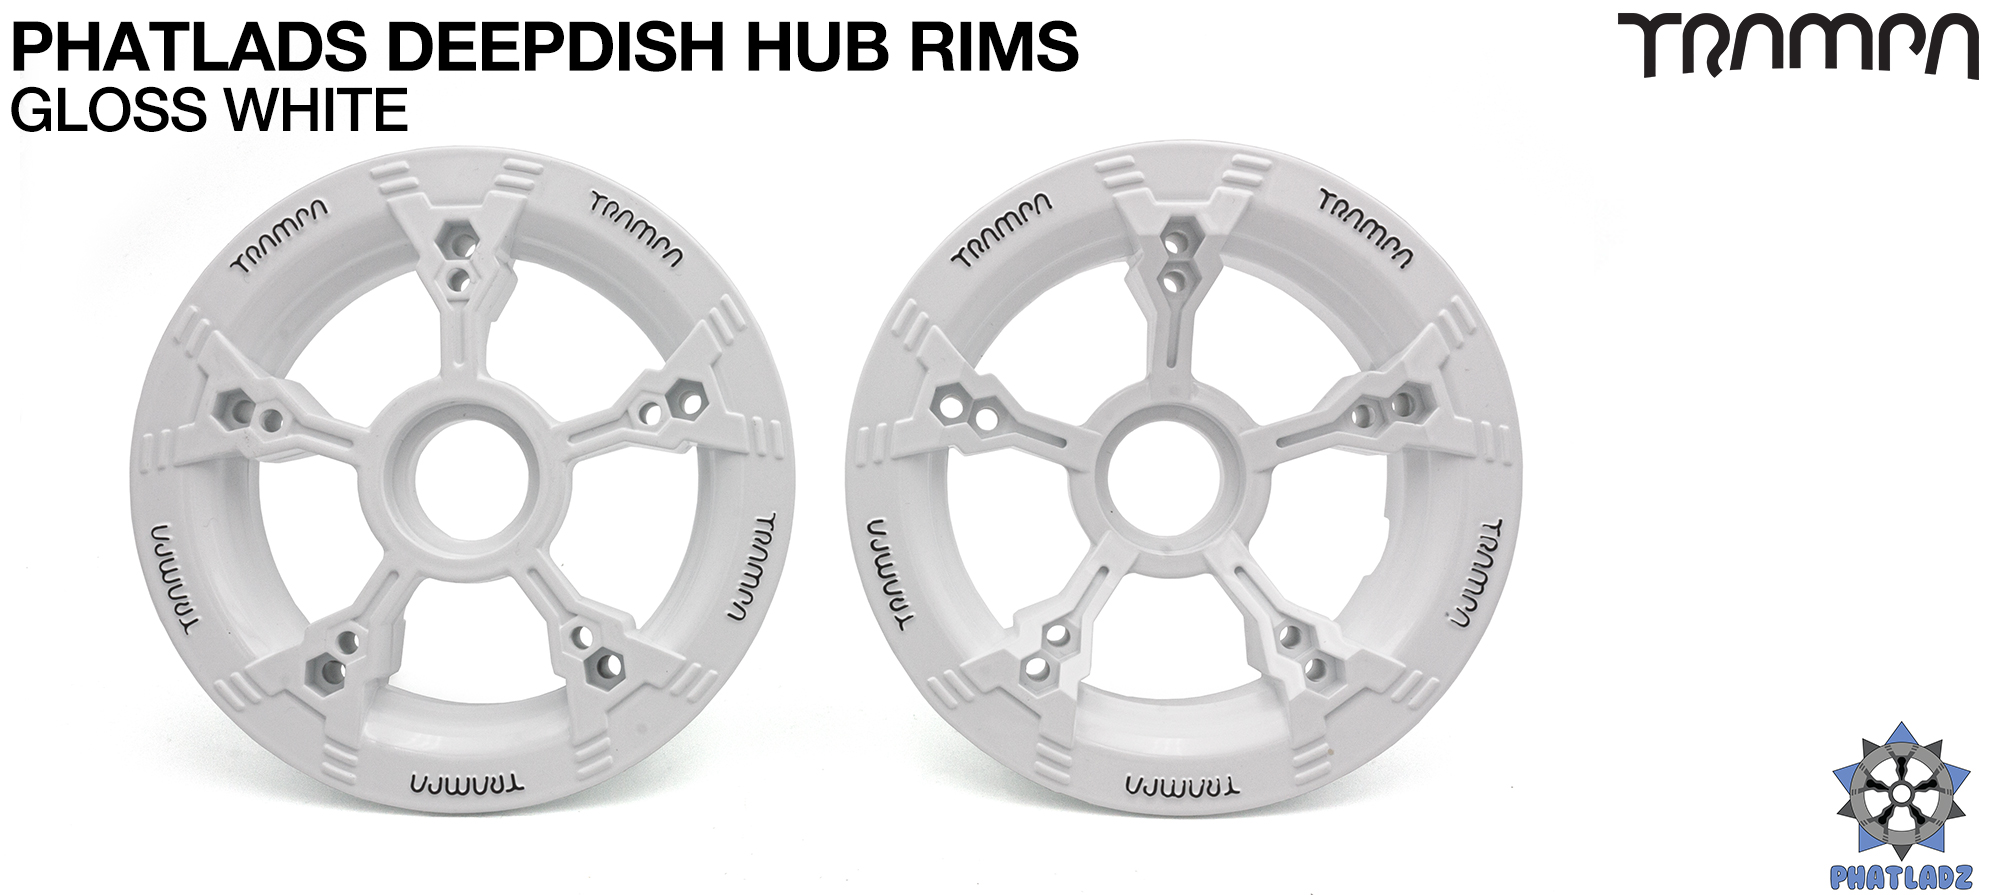 Gloss White with Black Logo PHATLADS hubs please (+£5)